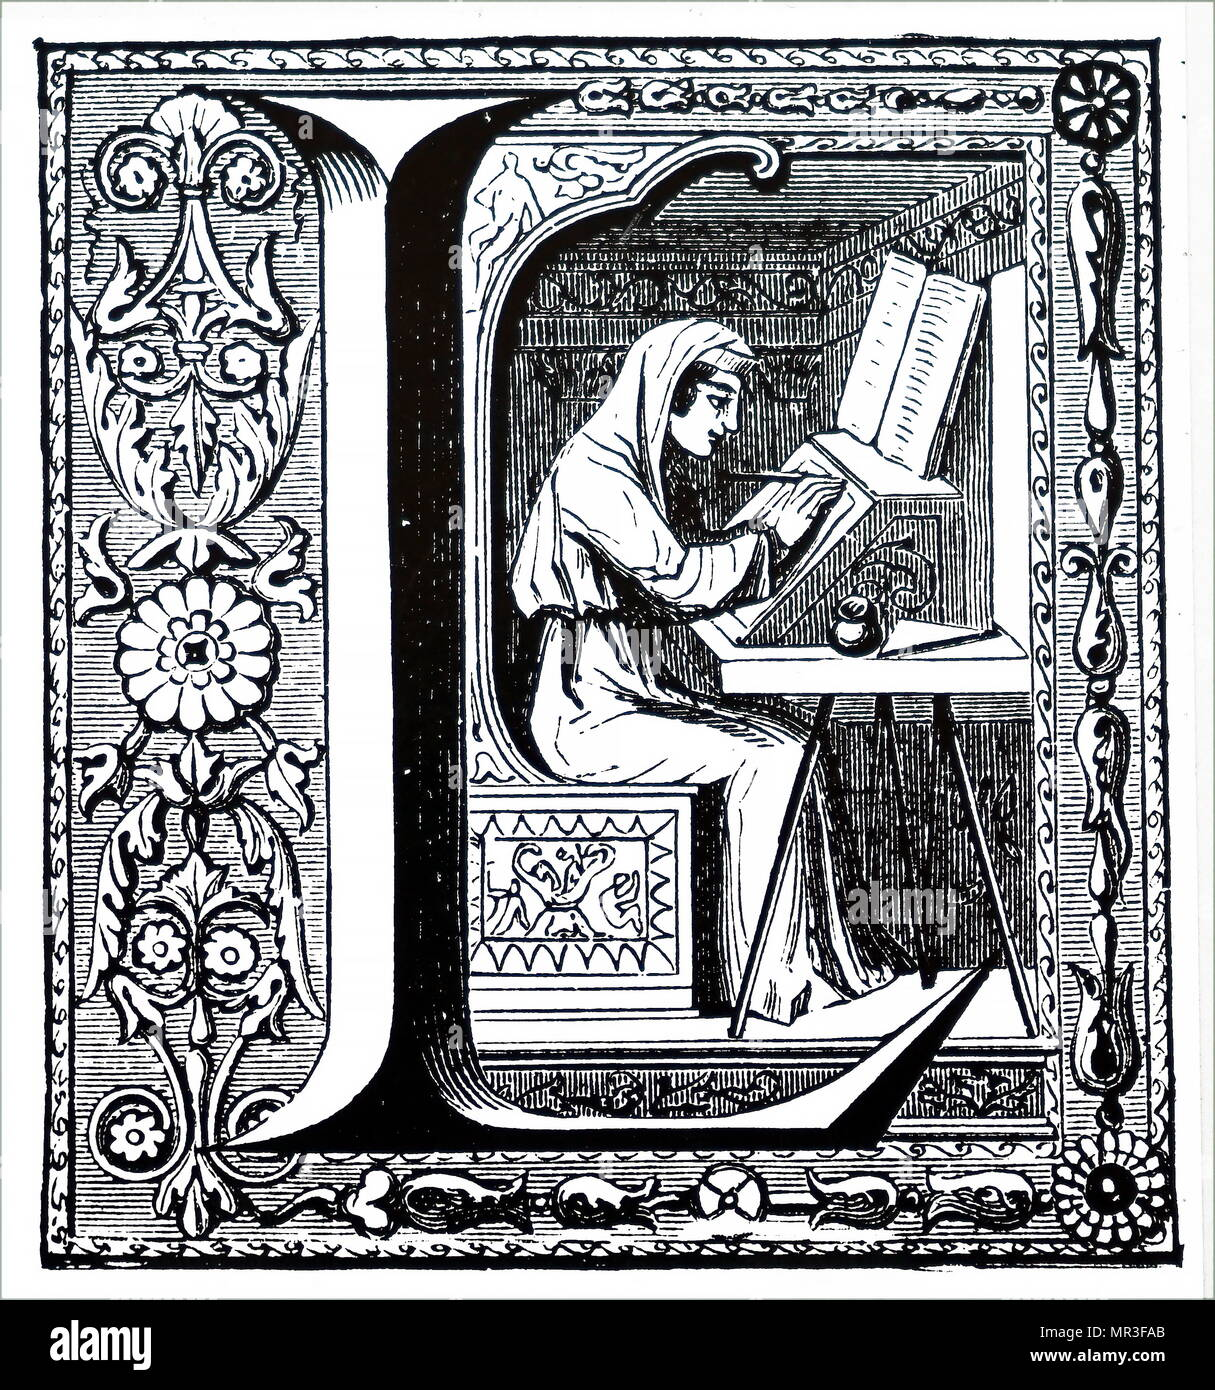 Engraving depicting a monk illuminating a manuscript. Dated 14th century - Stock Image